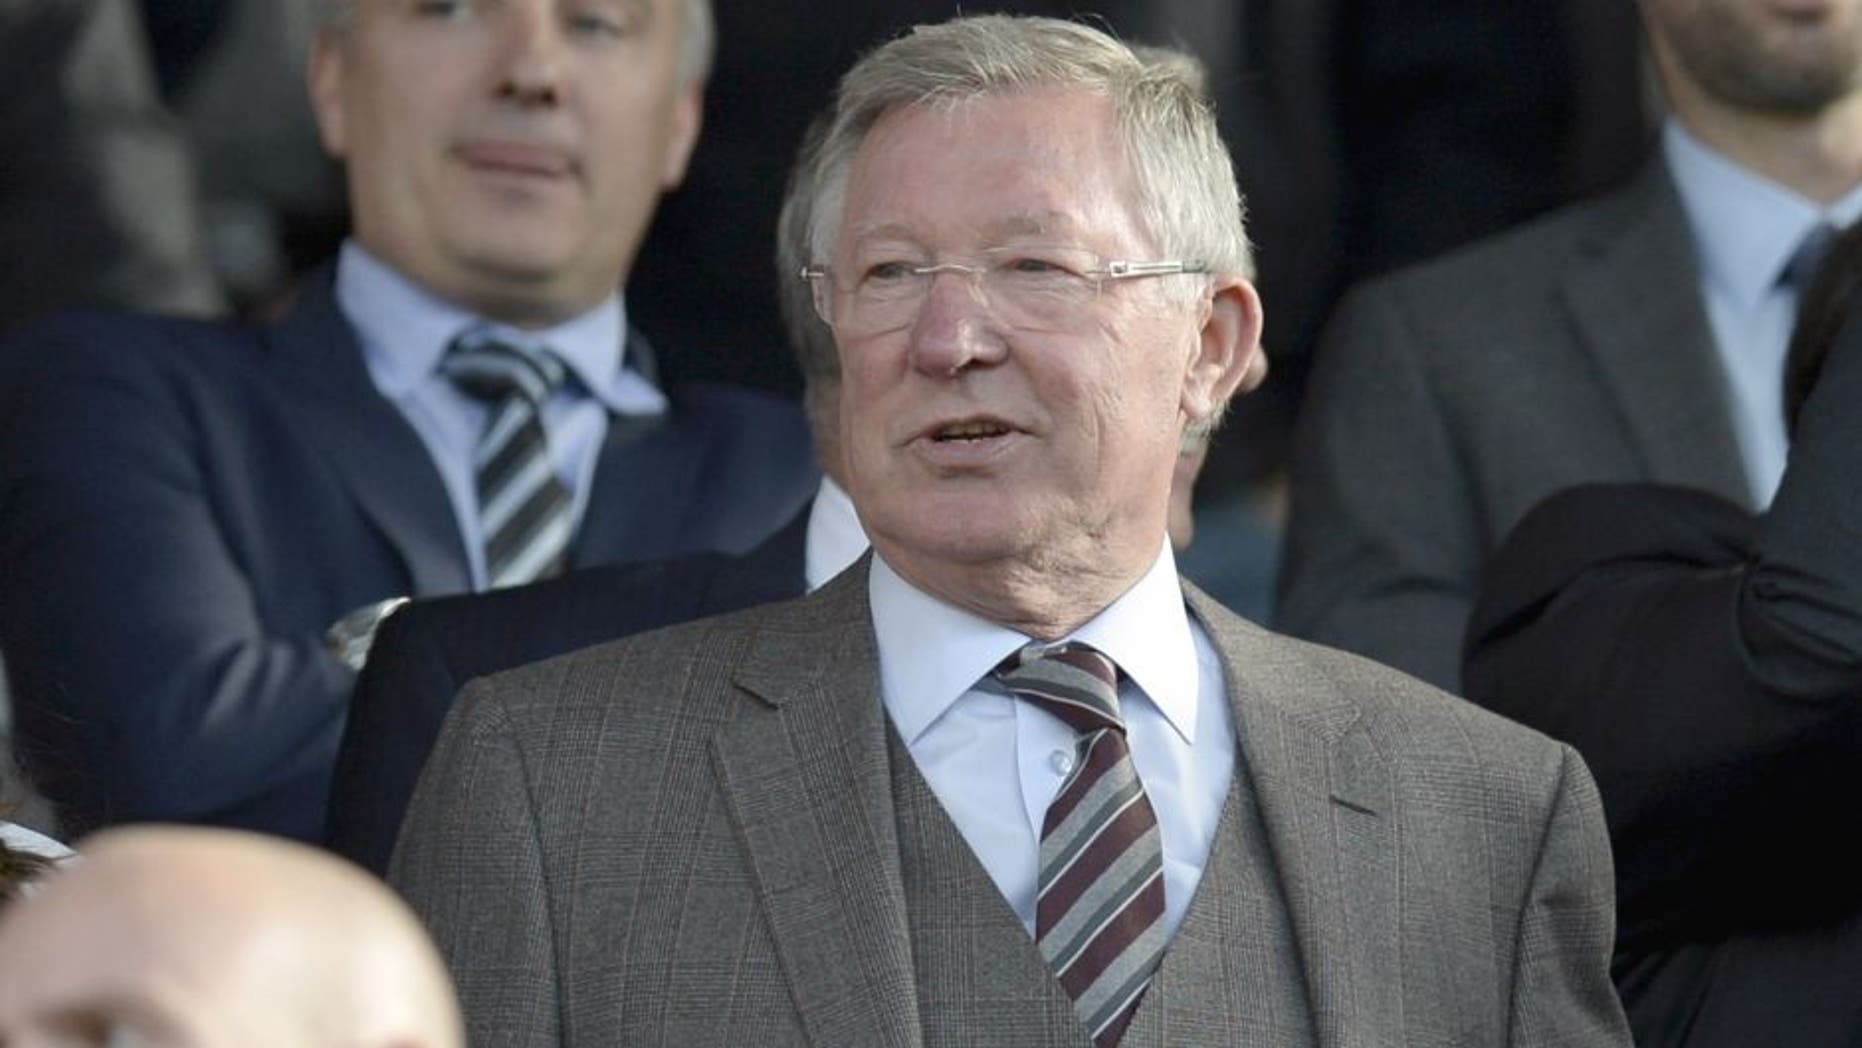 Manchester United's former Scottish manager Alex Ferguson arrives to watch the English Premier League football match between Manchester United and Liverpool at Old Trafford in Manchester, north west England, on September 12, 2015. AFP PHOTO / OLI SCARFF RESTRICTED TO EDITORIAL USE. No use with unauthorized audio, video, data, fixture lists, club/league logos or 'live' services. Online in-match use limited to 75 images, no video emulation. No use in betting, games or single club/league/player publications. (Photo credit should read OLI SCARFF/AFP/Getty Images)